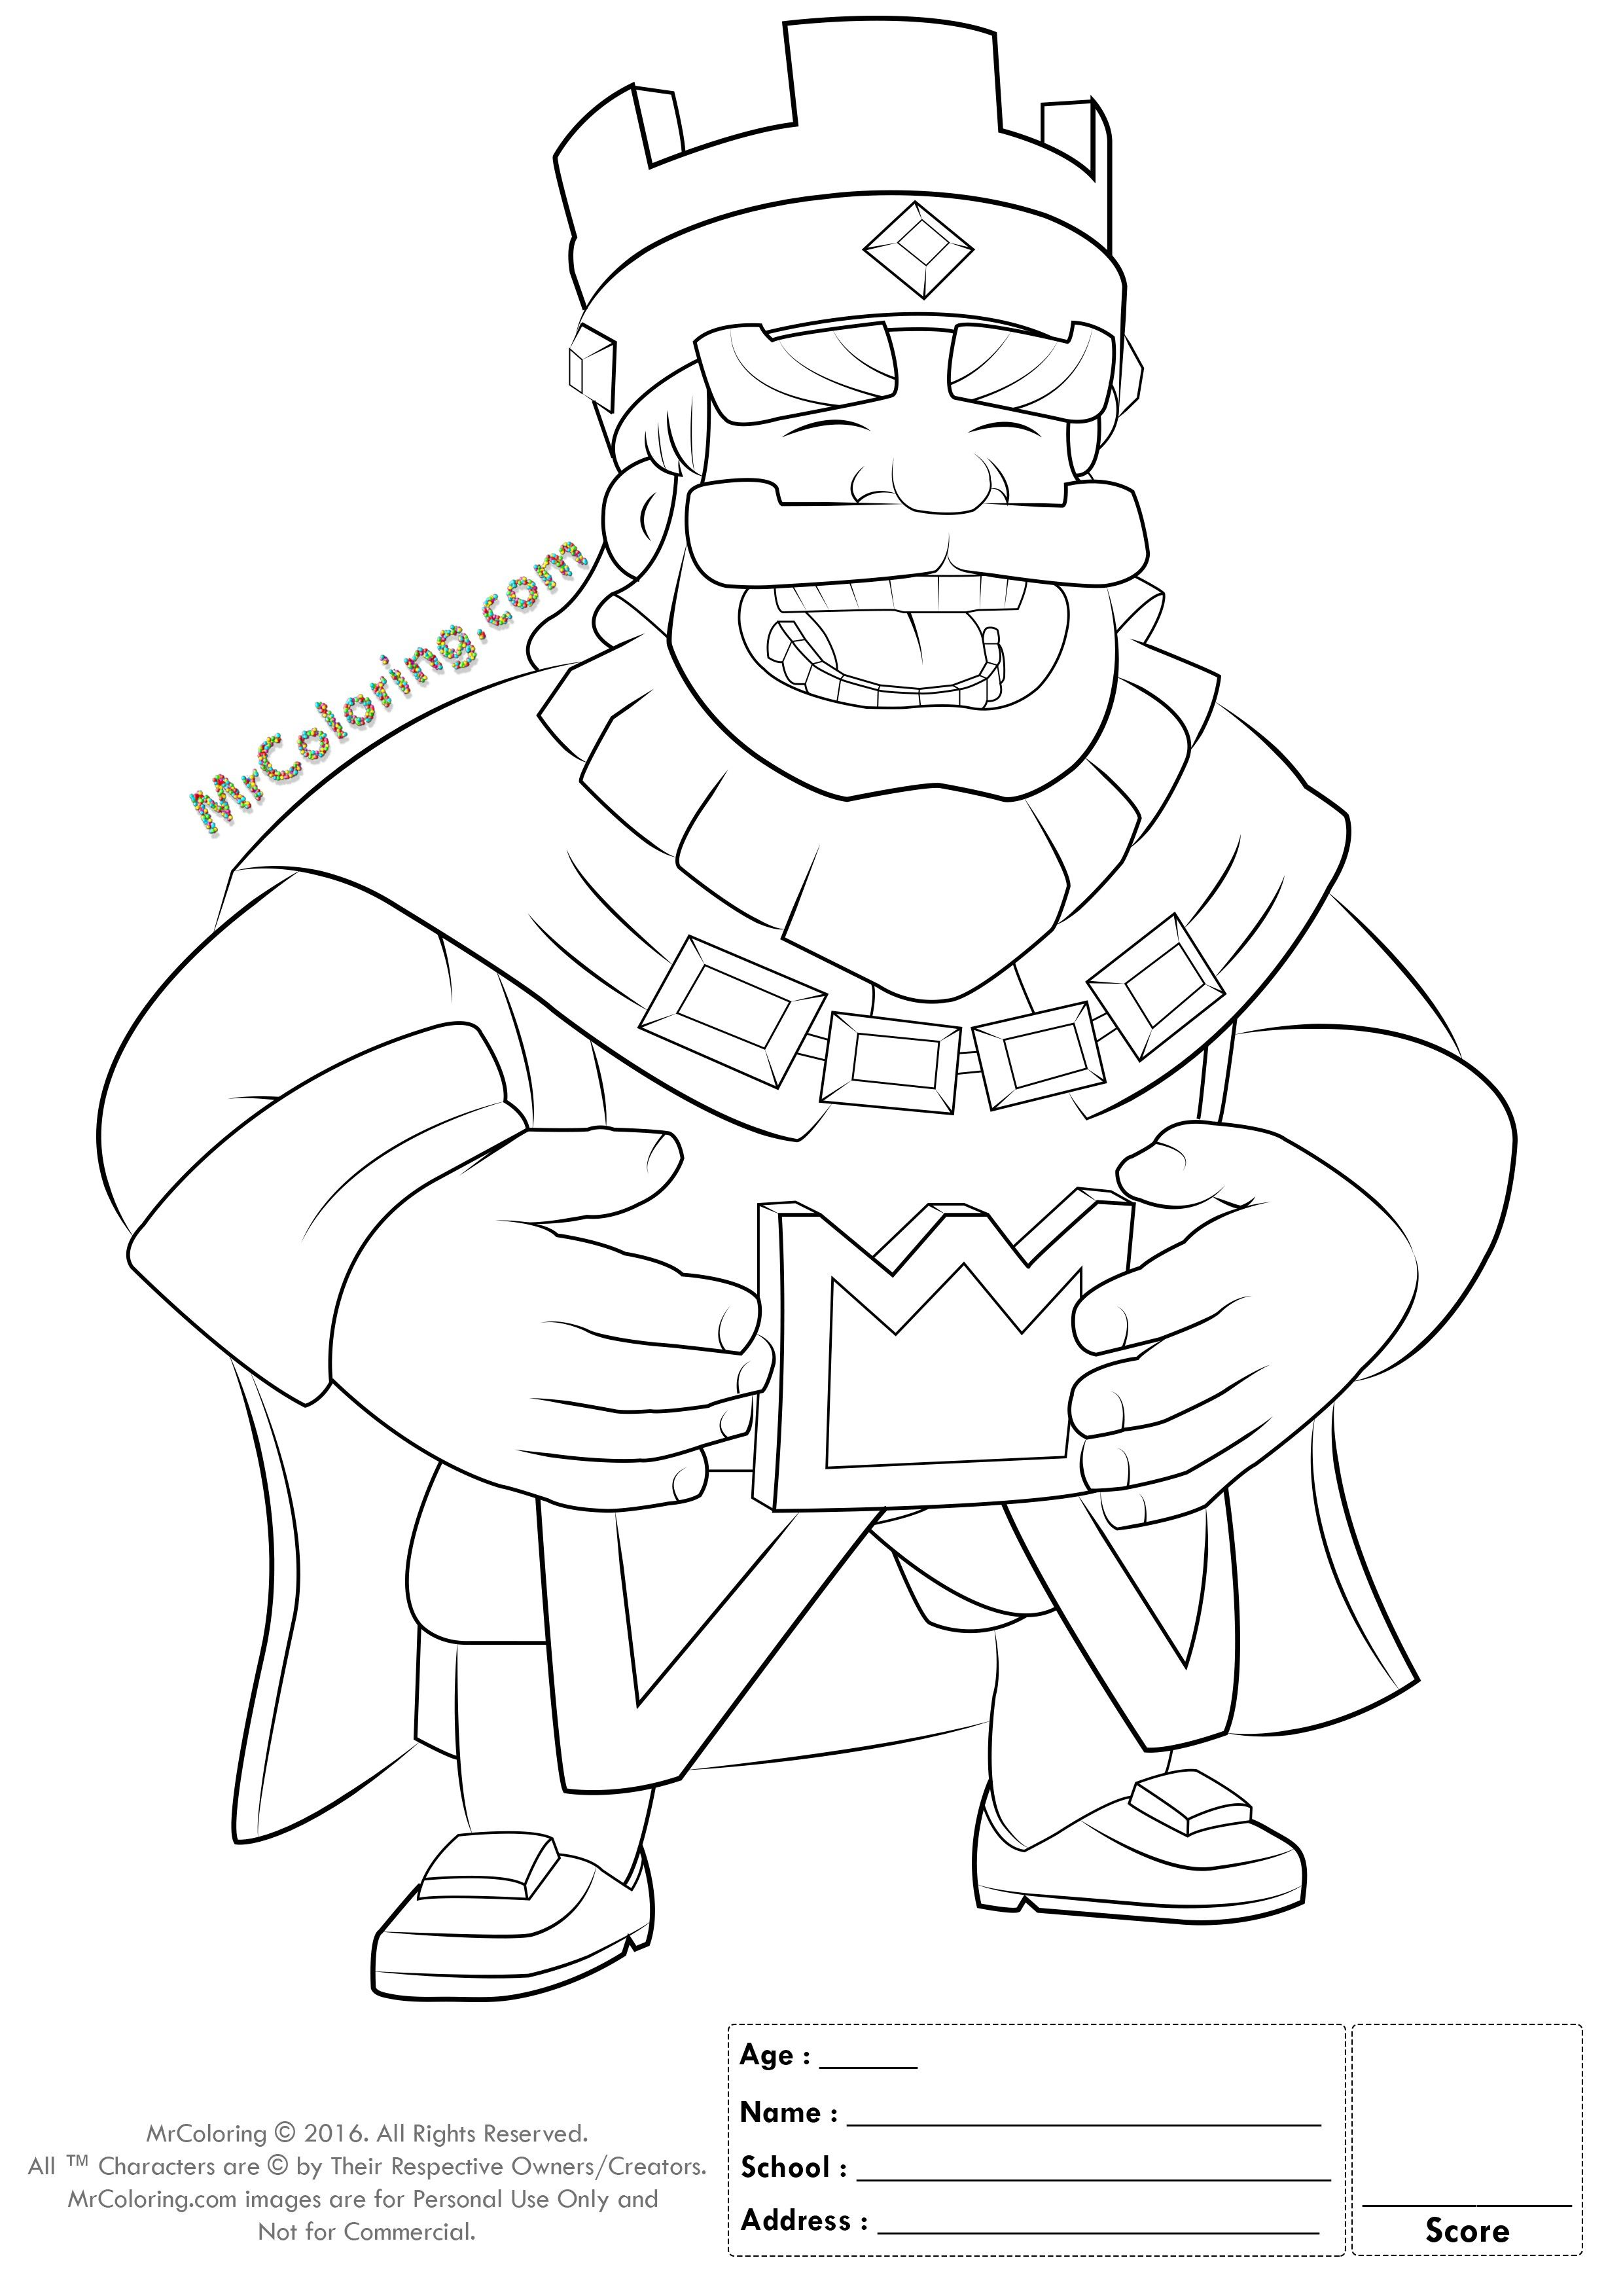 Clash Royale Princess Coloring Pages From The Thousand Photographs Online Concerning Cla Princess Coloring Pages Clash Royale Drawings Cartoon Coloring Pages